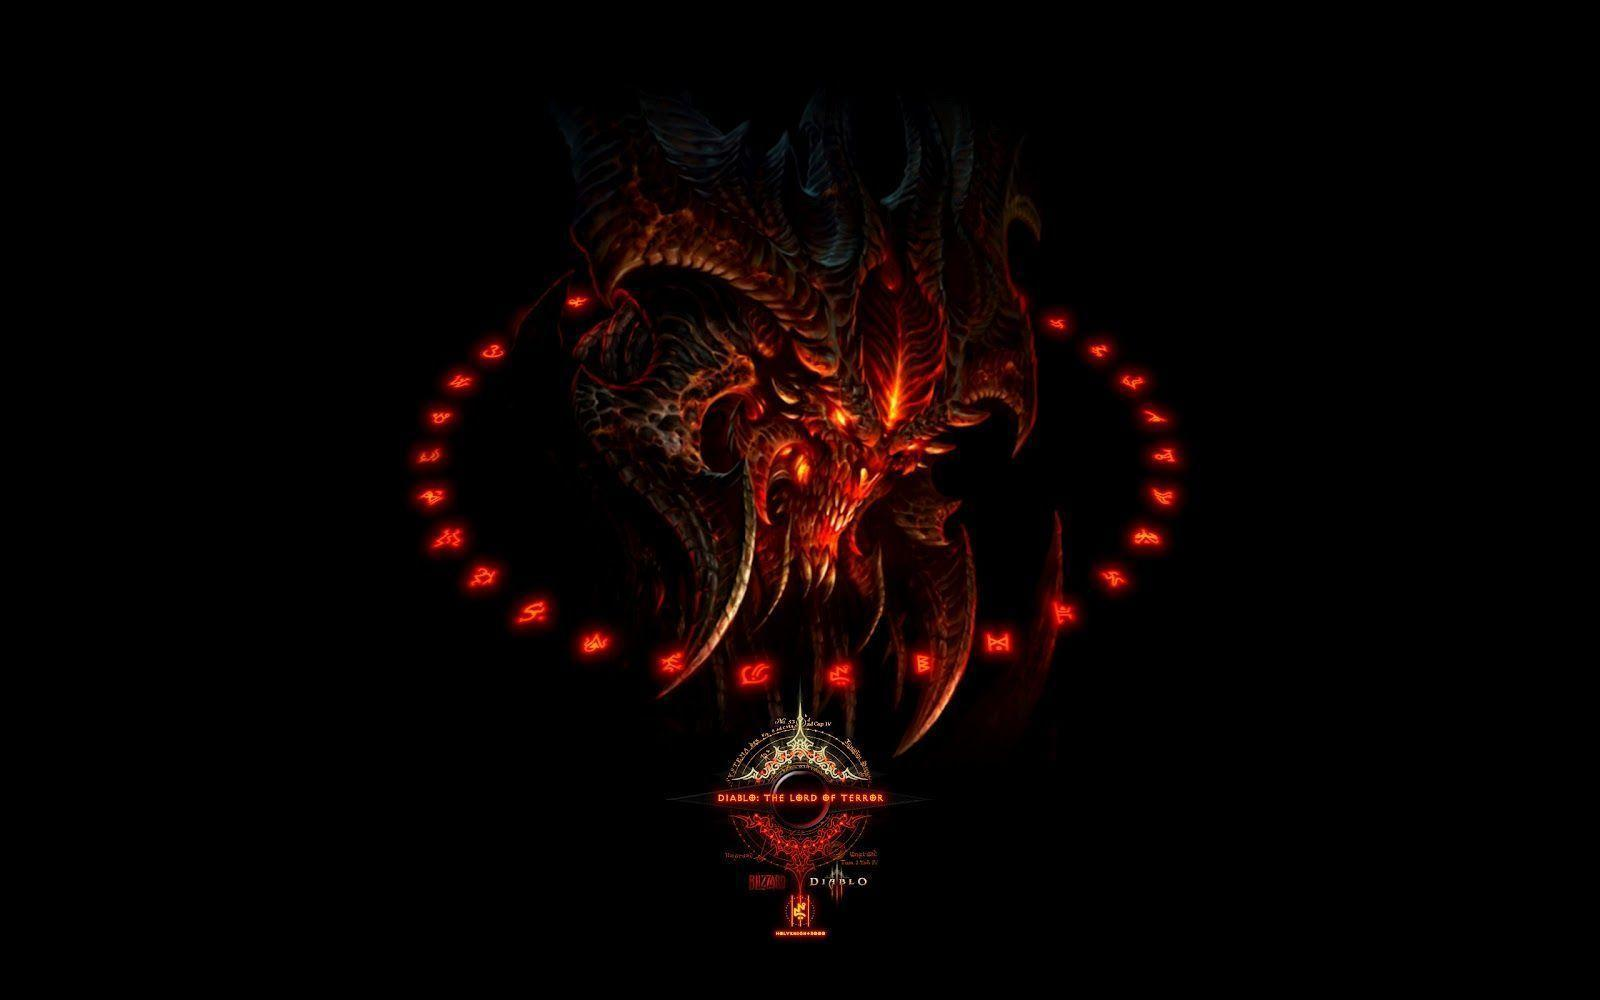 DIABLO 3 Wallpapers Concept ART Image POSTER HD